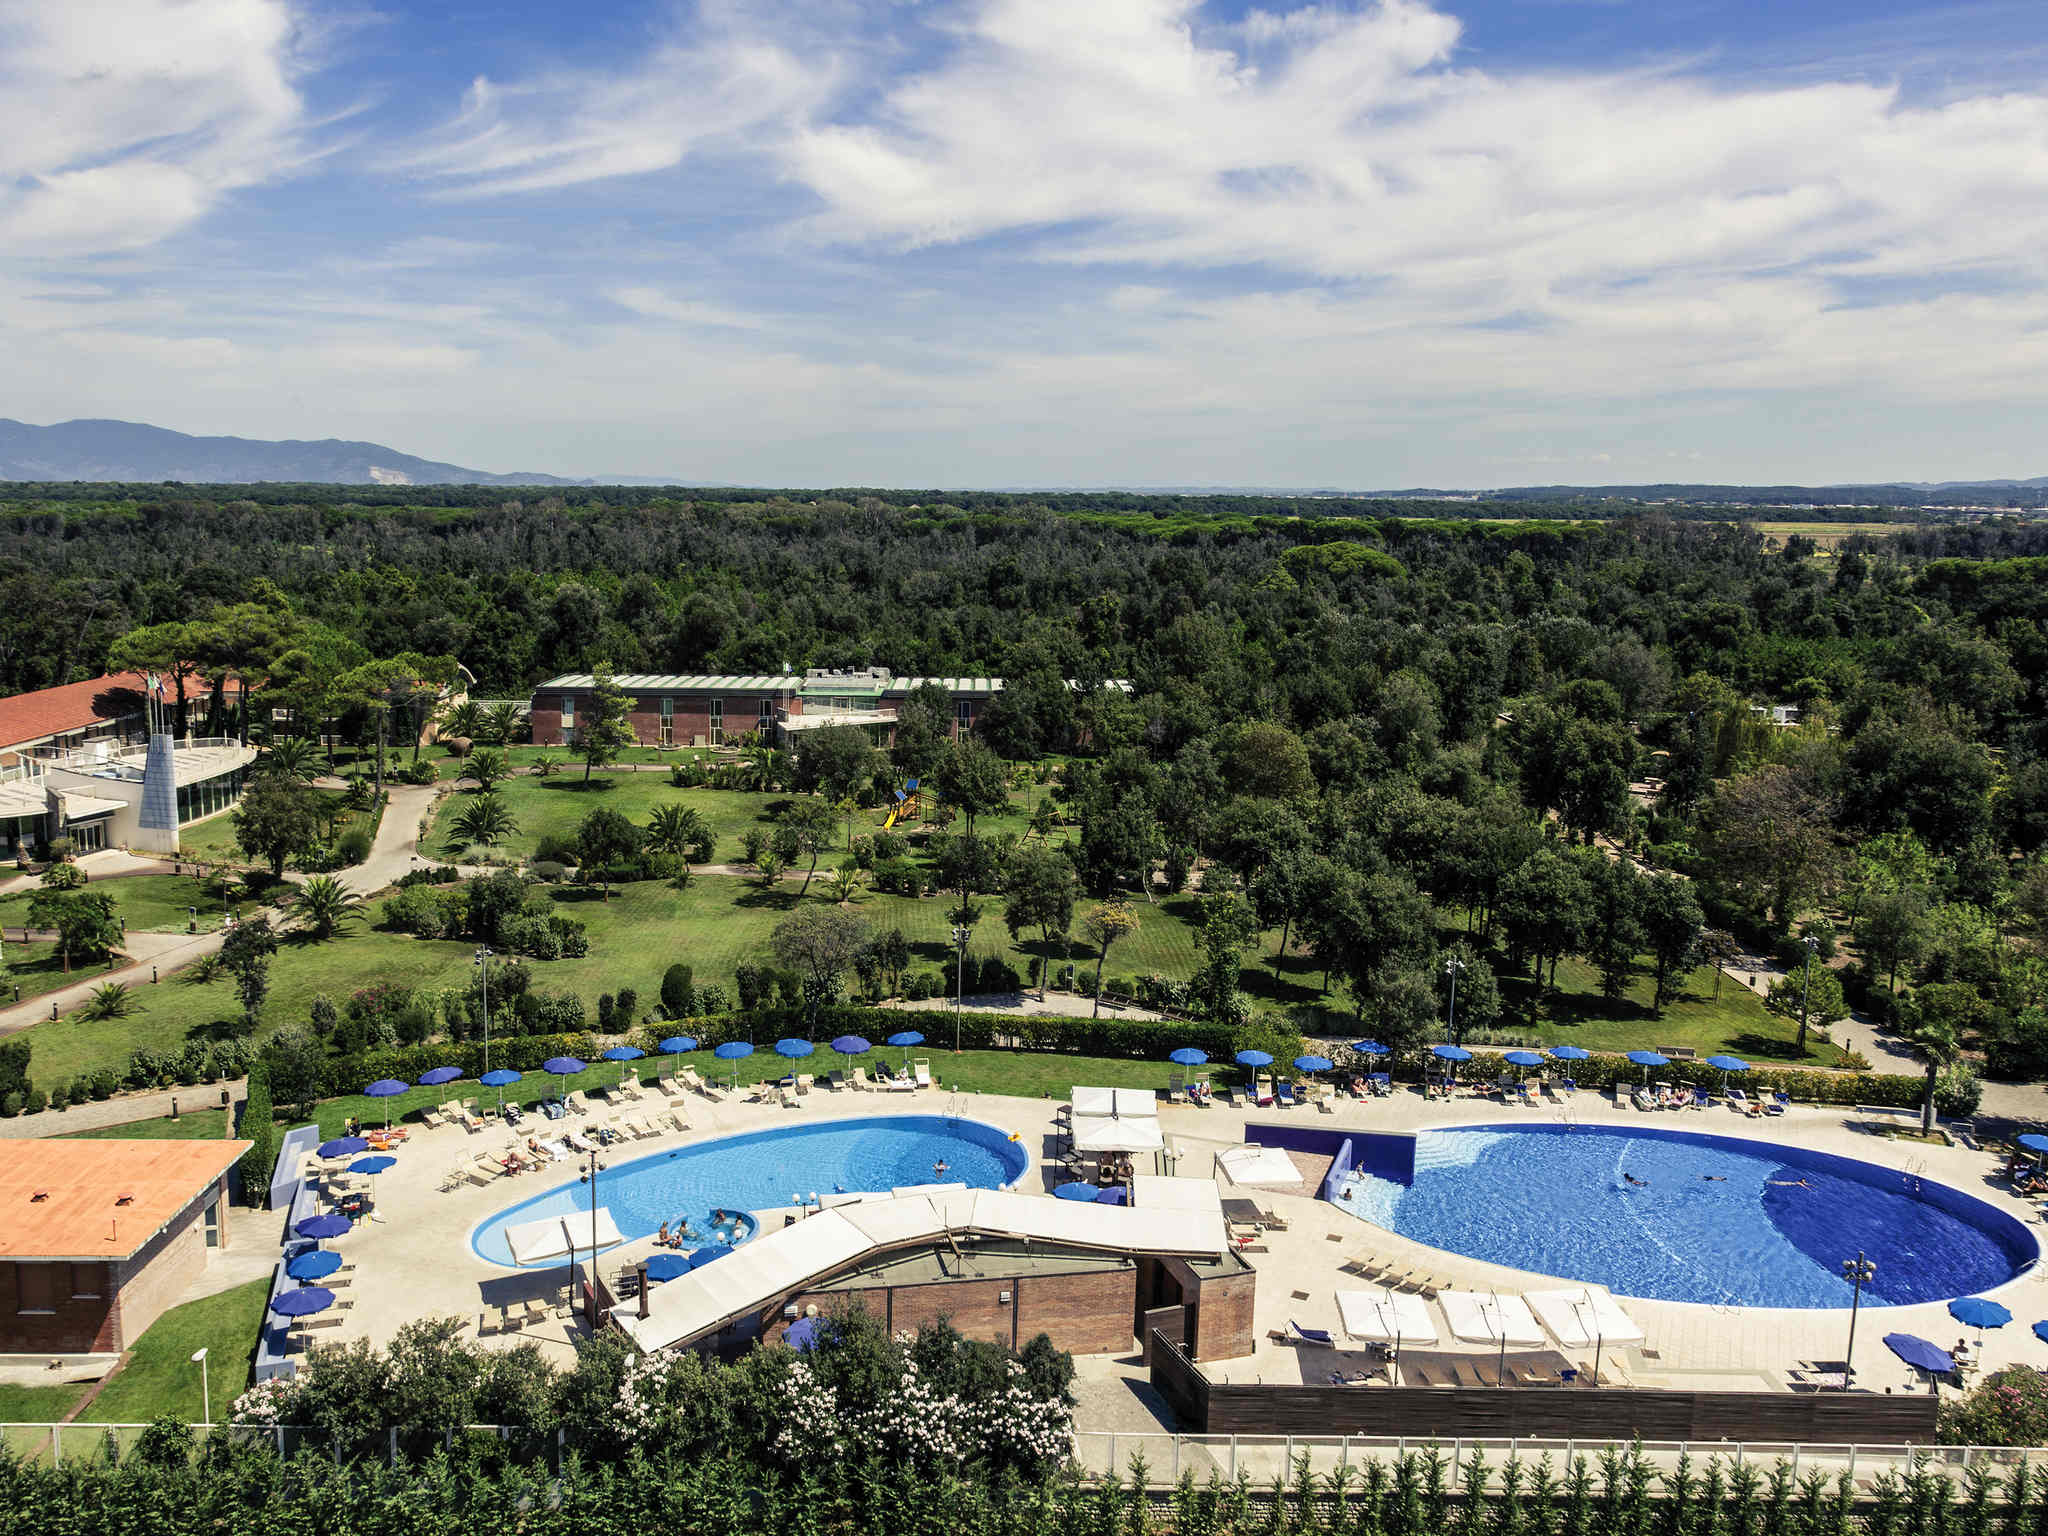 Otel – Hotel Mercure Tirrenia Green Park - New Opening